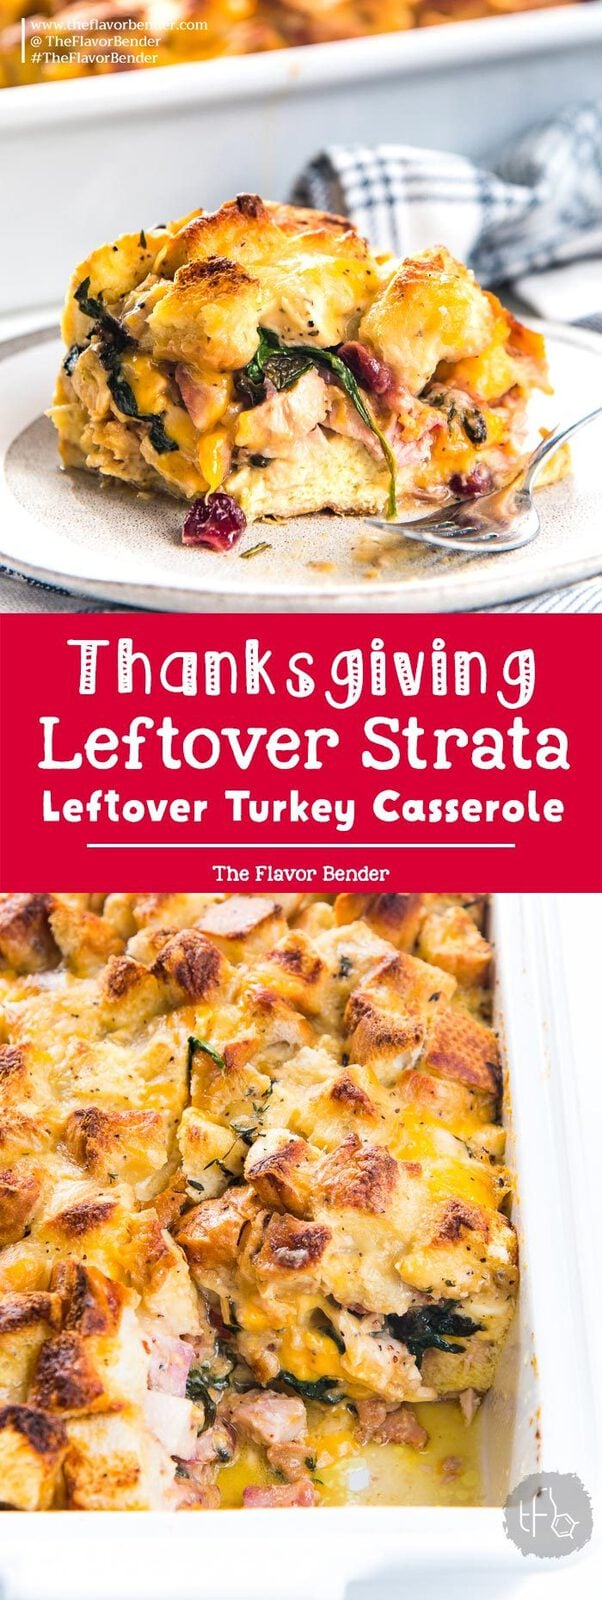 Thanksgiving Leftover Strata - Transform all your thanksgiving leftovers into this layered casserole with pockets of gooey cheese, cranberry sauce, turkey, french toast filling and gravy soaked croutons on top! #ThanksgivingLeftoverCasserole #ThanksgivingBrunch #HolidayBrunchRecipes #TurkeyCasserole #SavoryBreadPudding